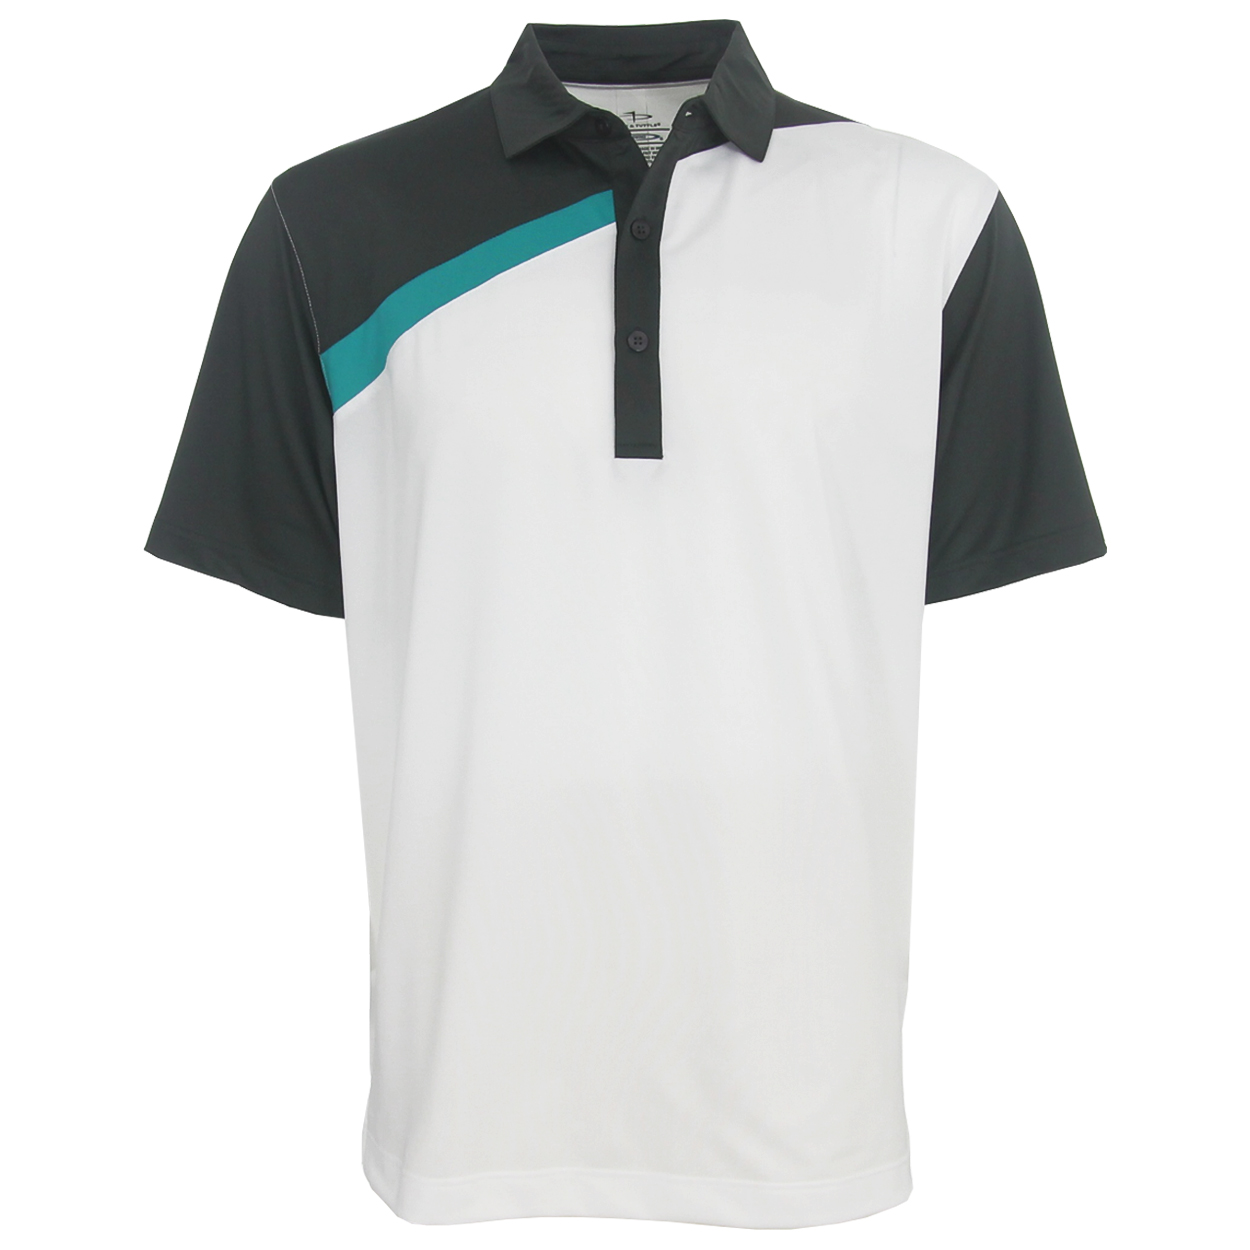 Page Tuttle Cool Swing 3 Tone Polo Golf Shirt